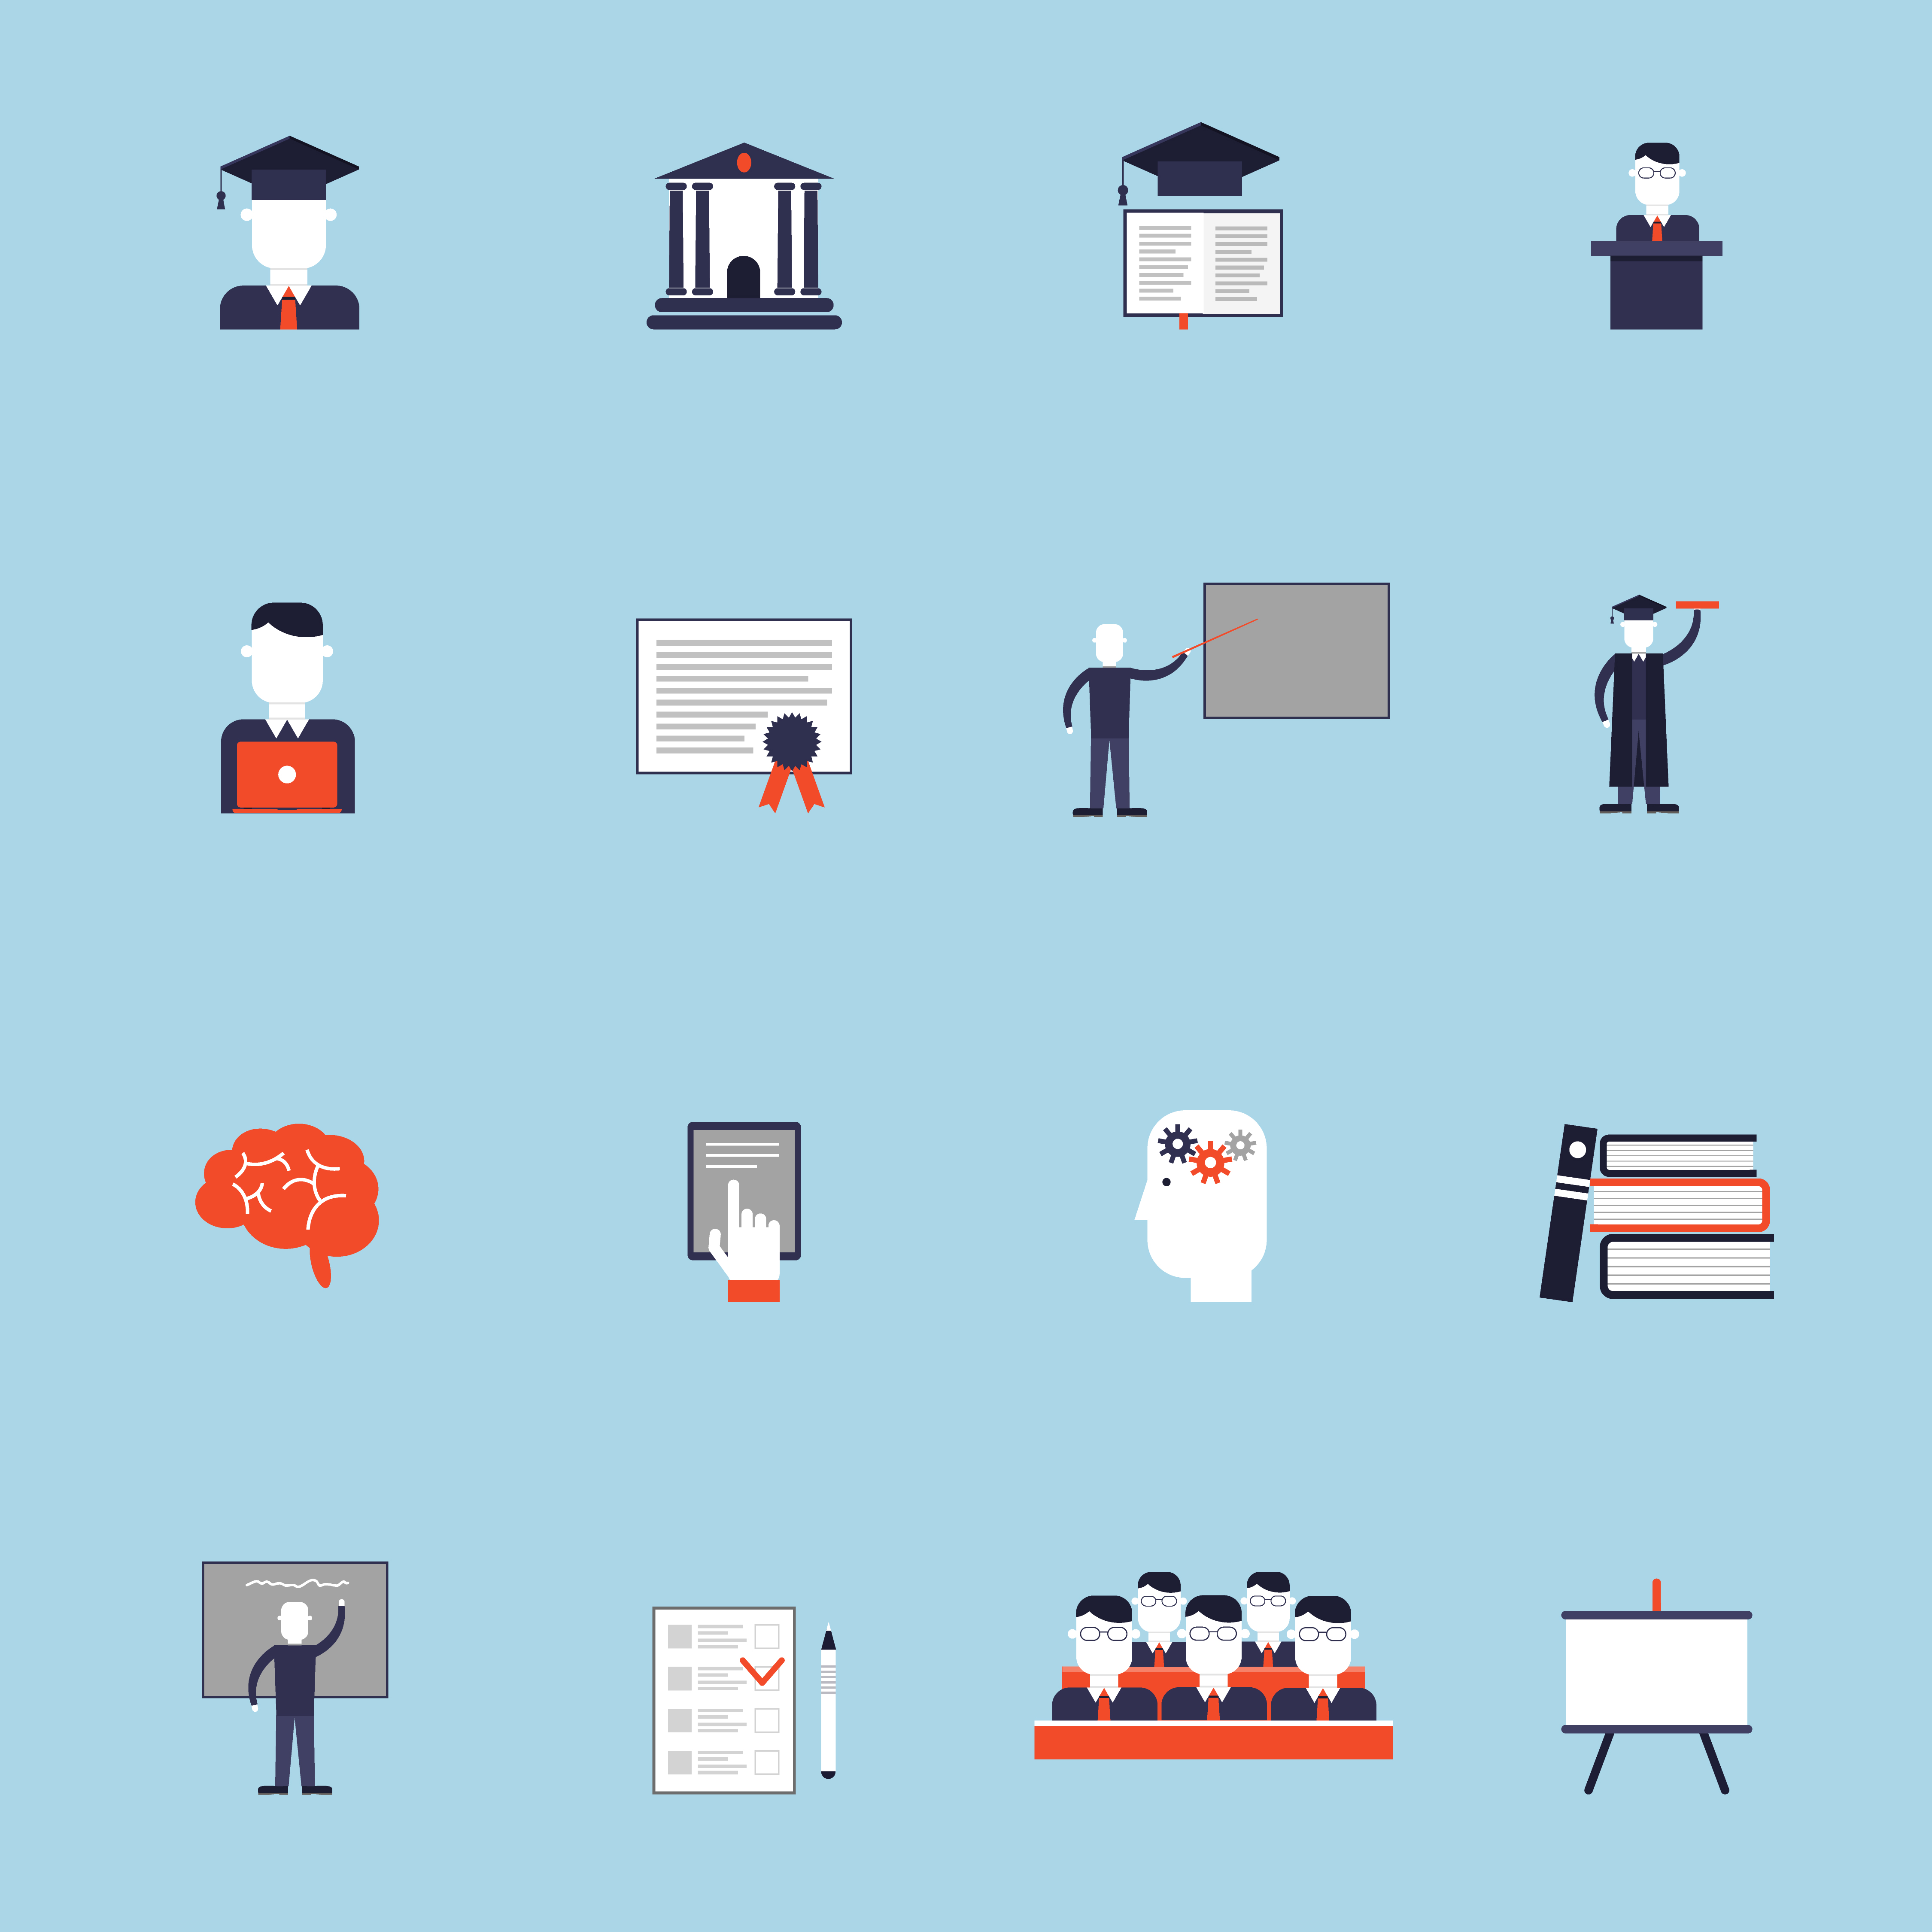 Higher Education Icon Flat - Download Free Vectors, Clipart Graphics & Vector Art